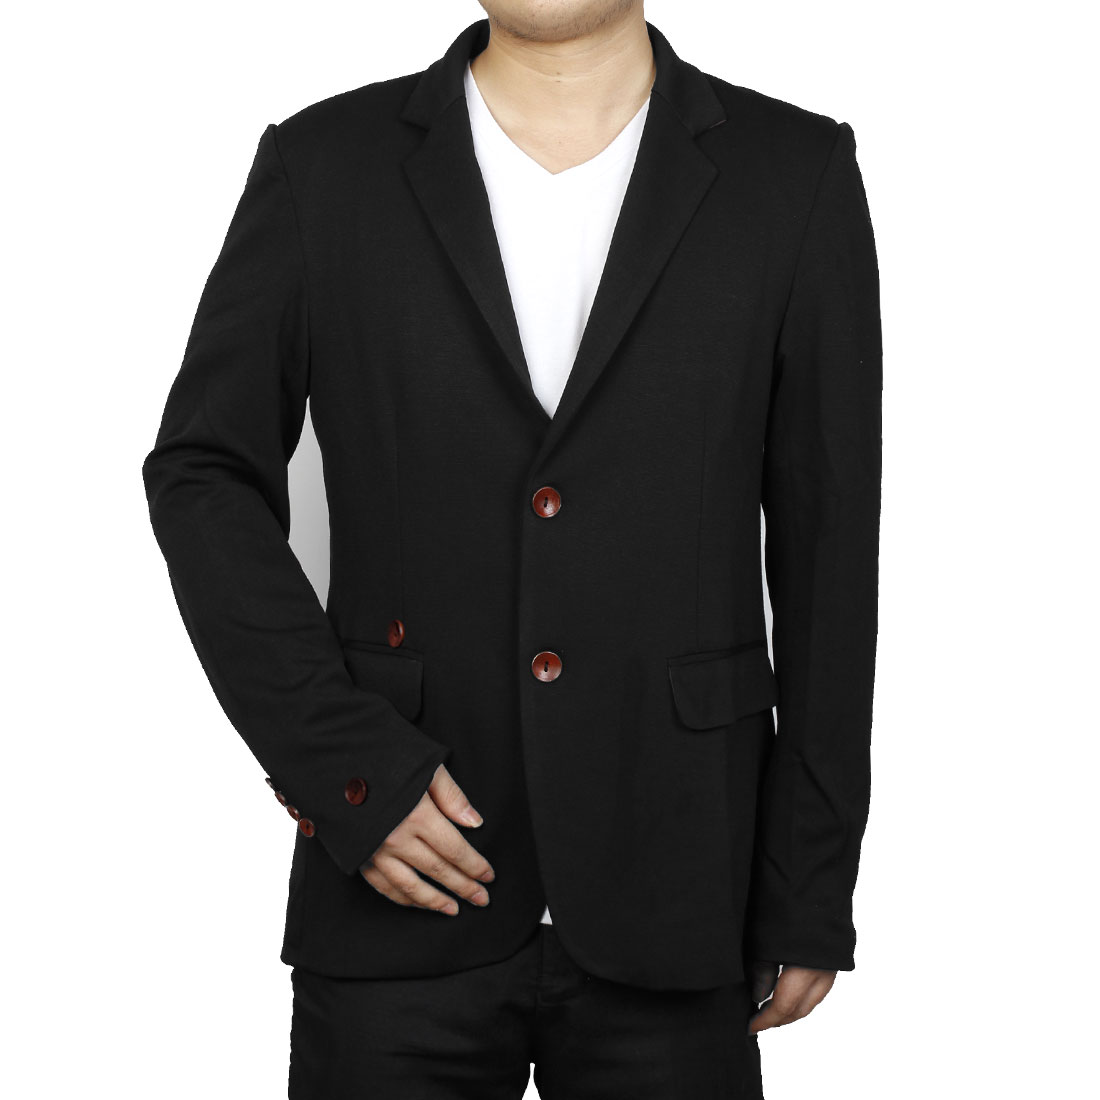 Men M Black Skinny Fit Patch Pockets Button Front Style Fashion Blazer